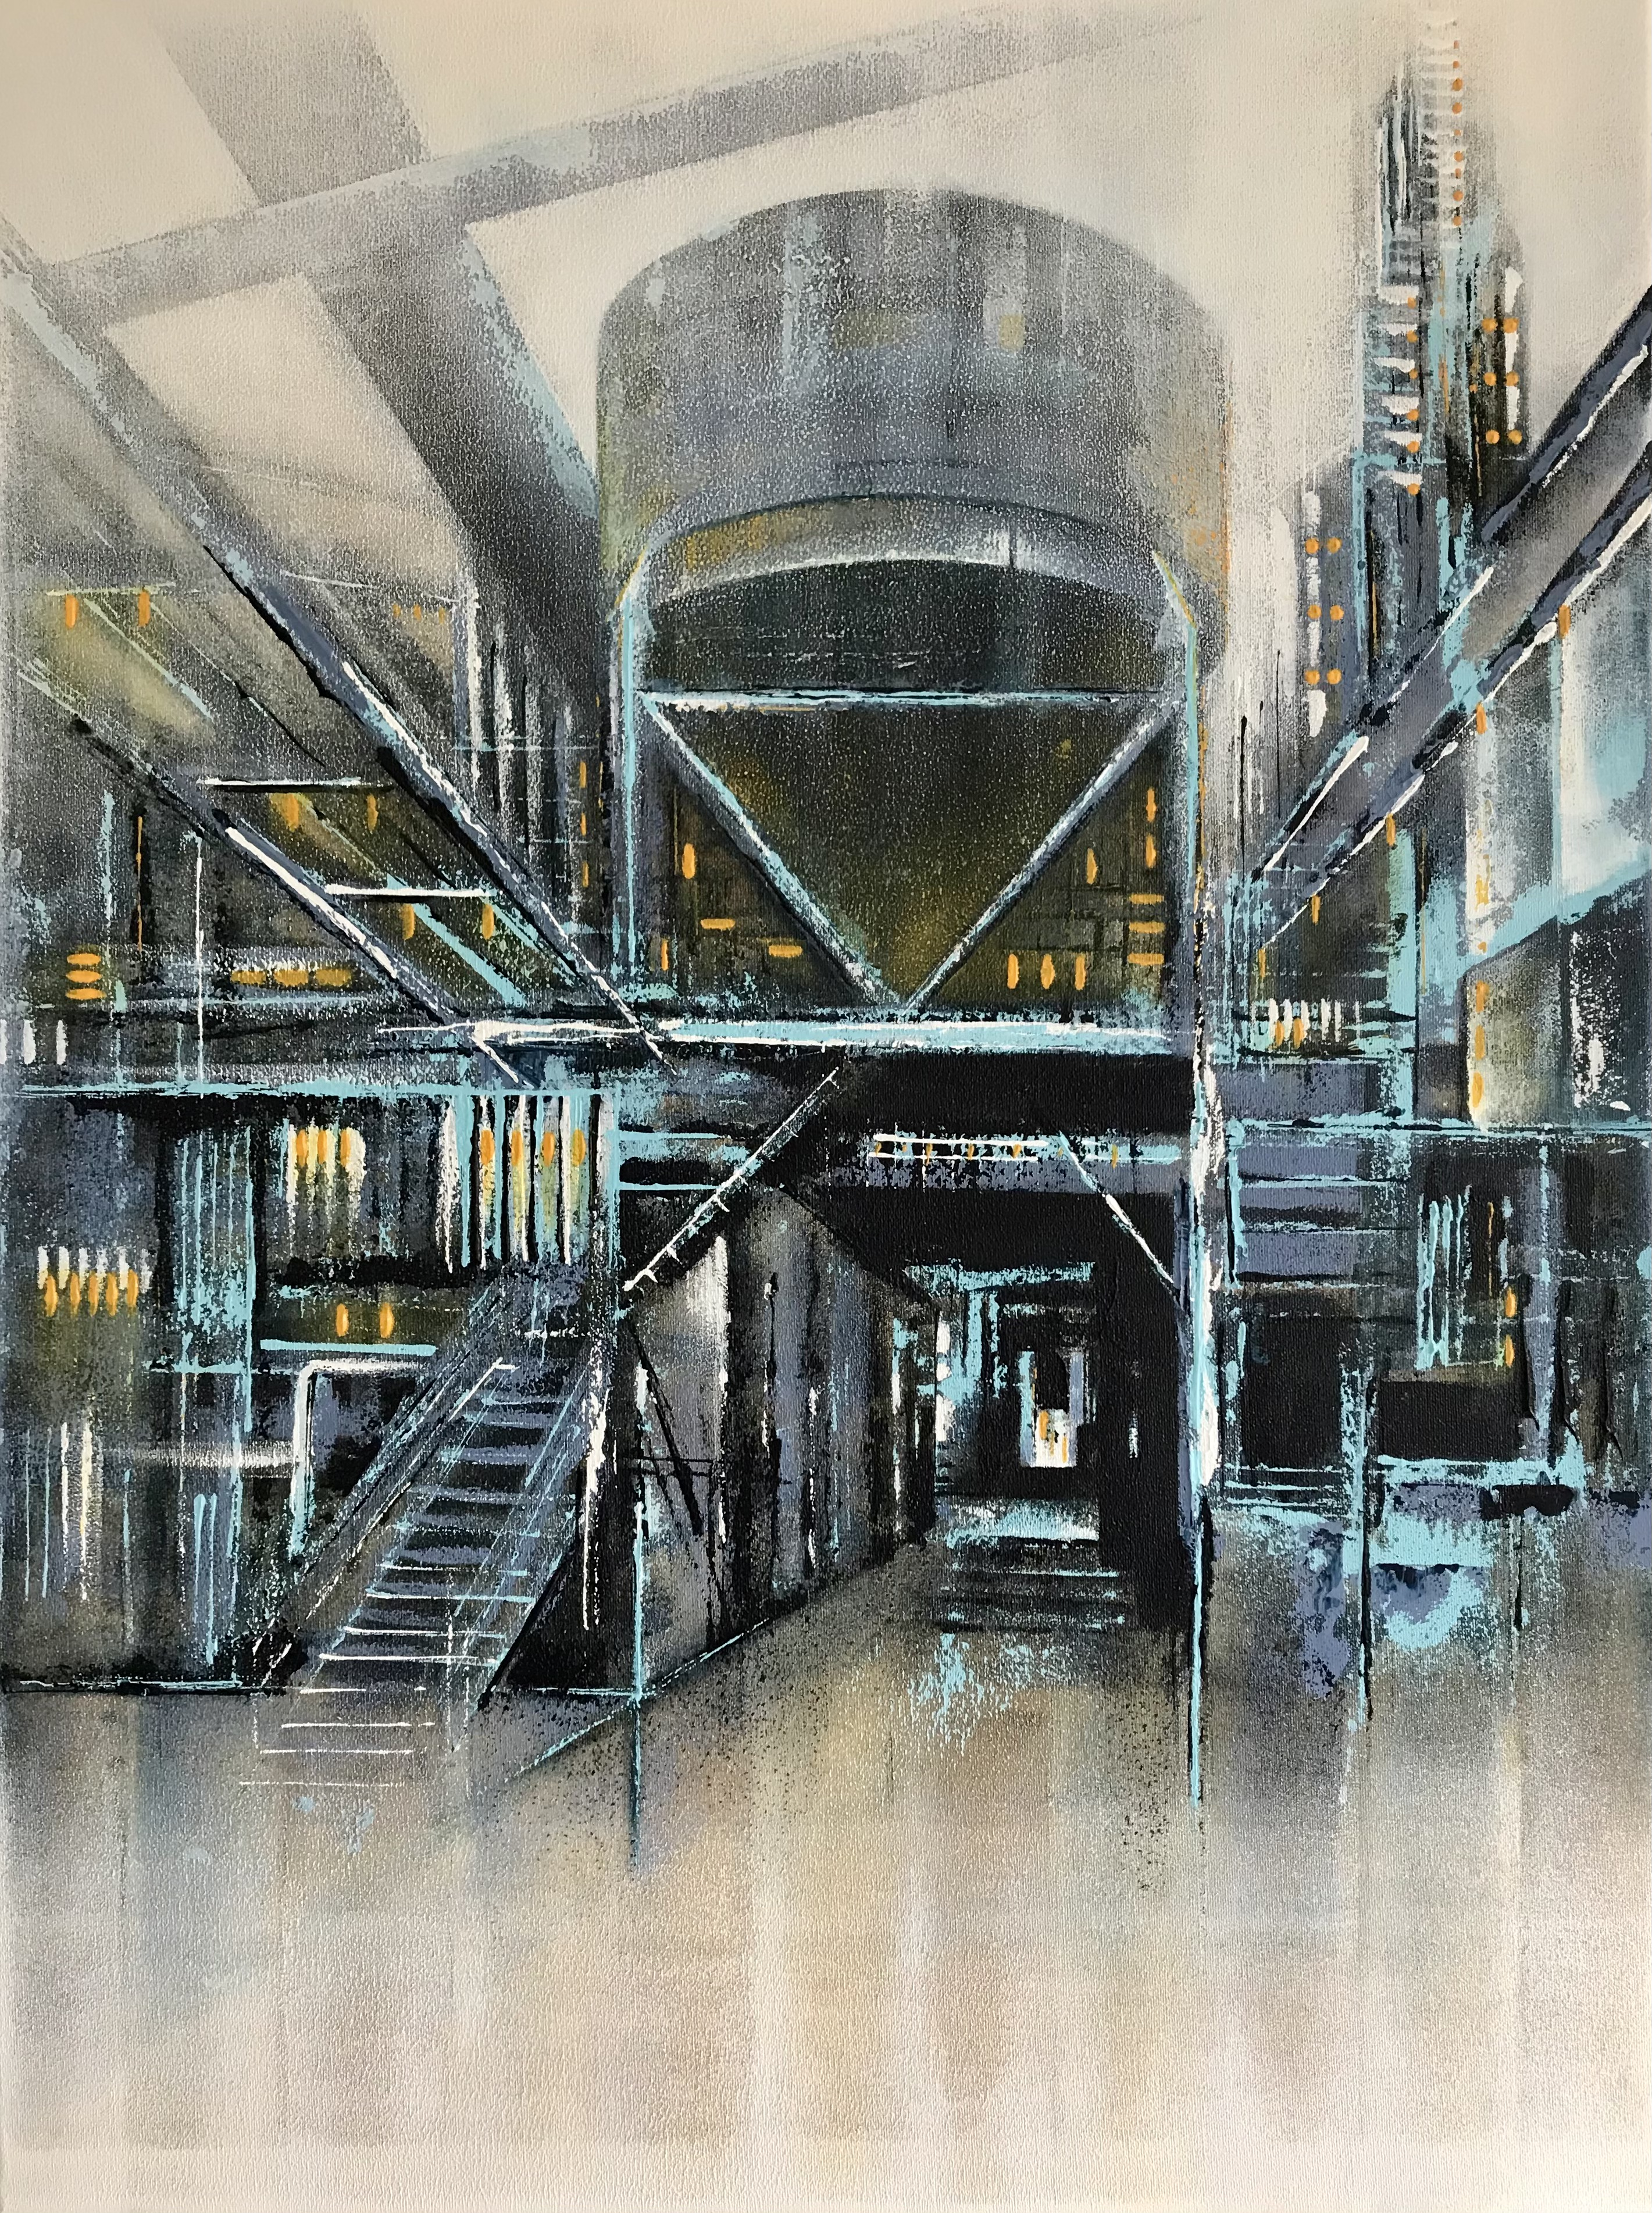 INDUSTRIAL BEAUTY - Imaginary